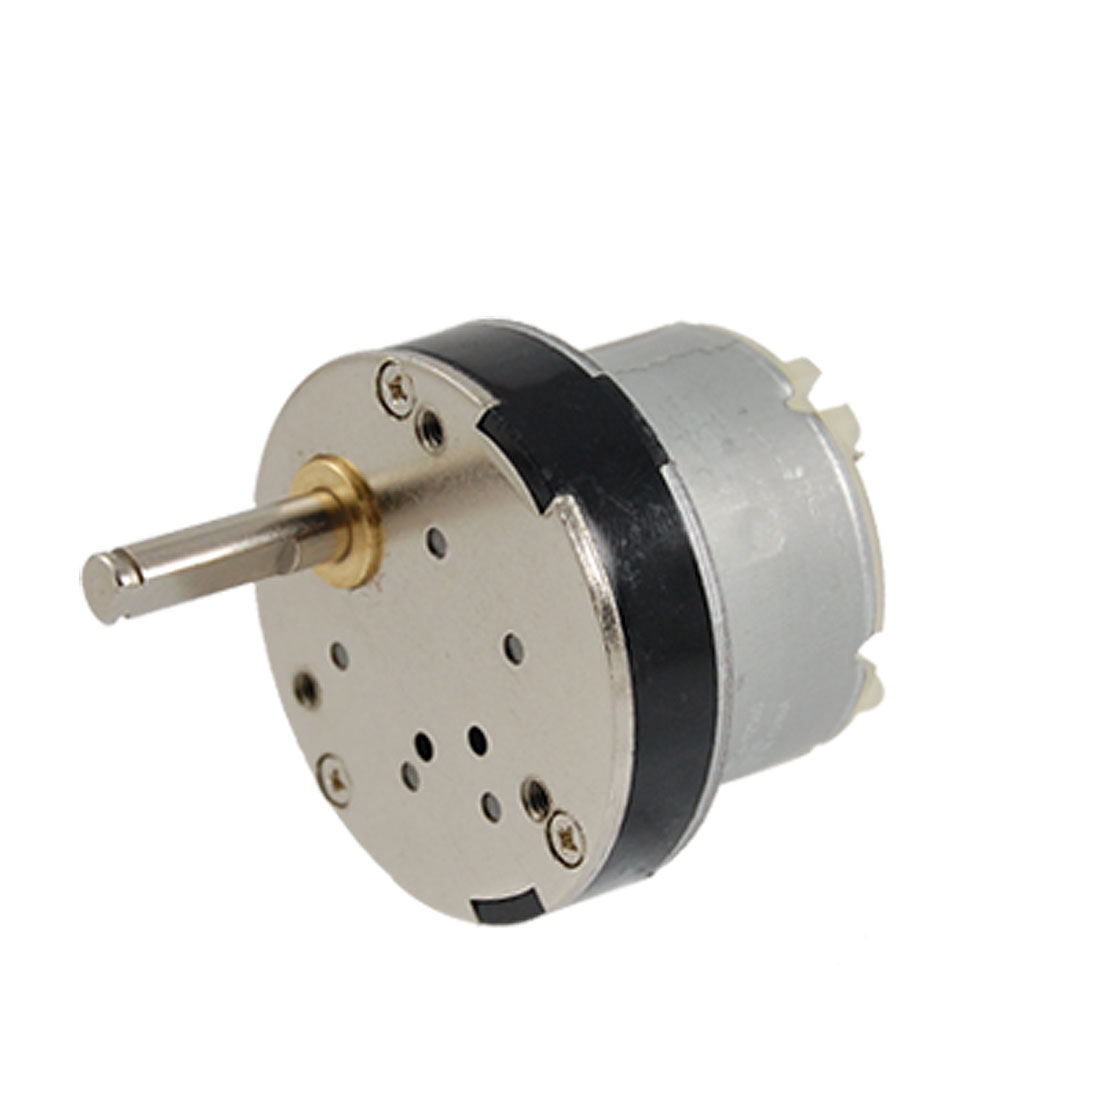 40mm Diameter 12V 0.5A DC 7RPM Speed Reducing Geared Motor